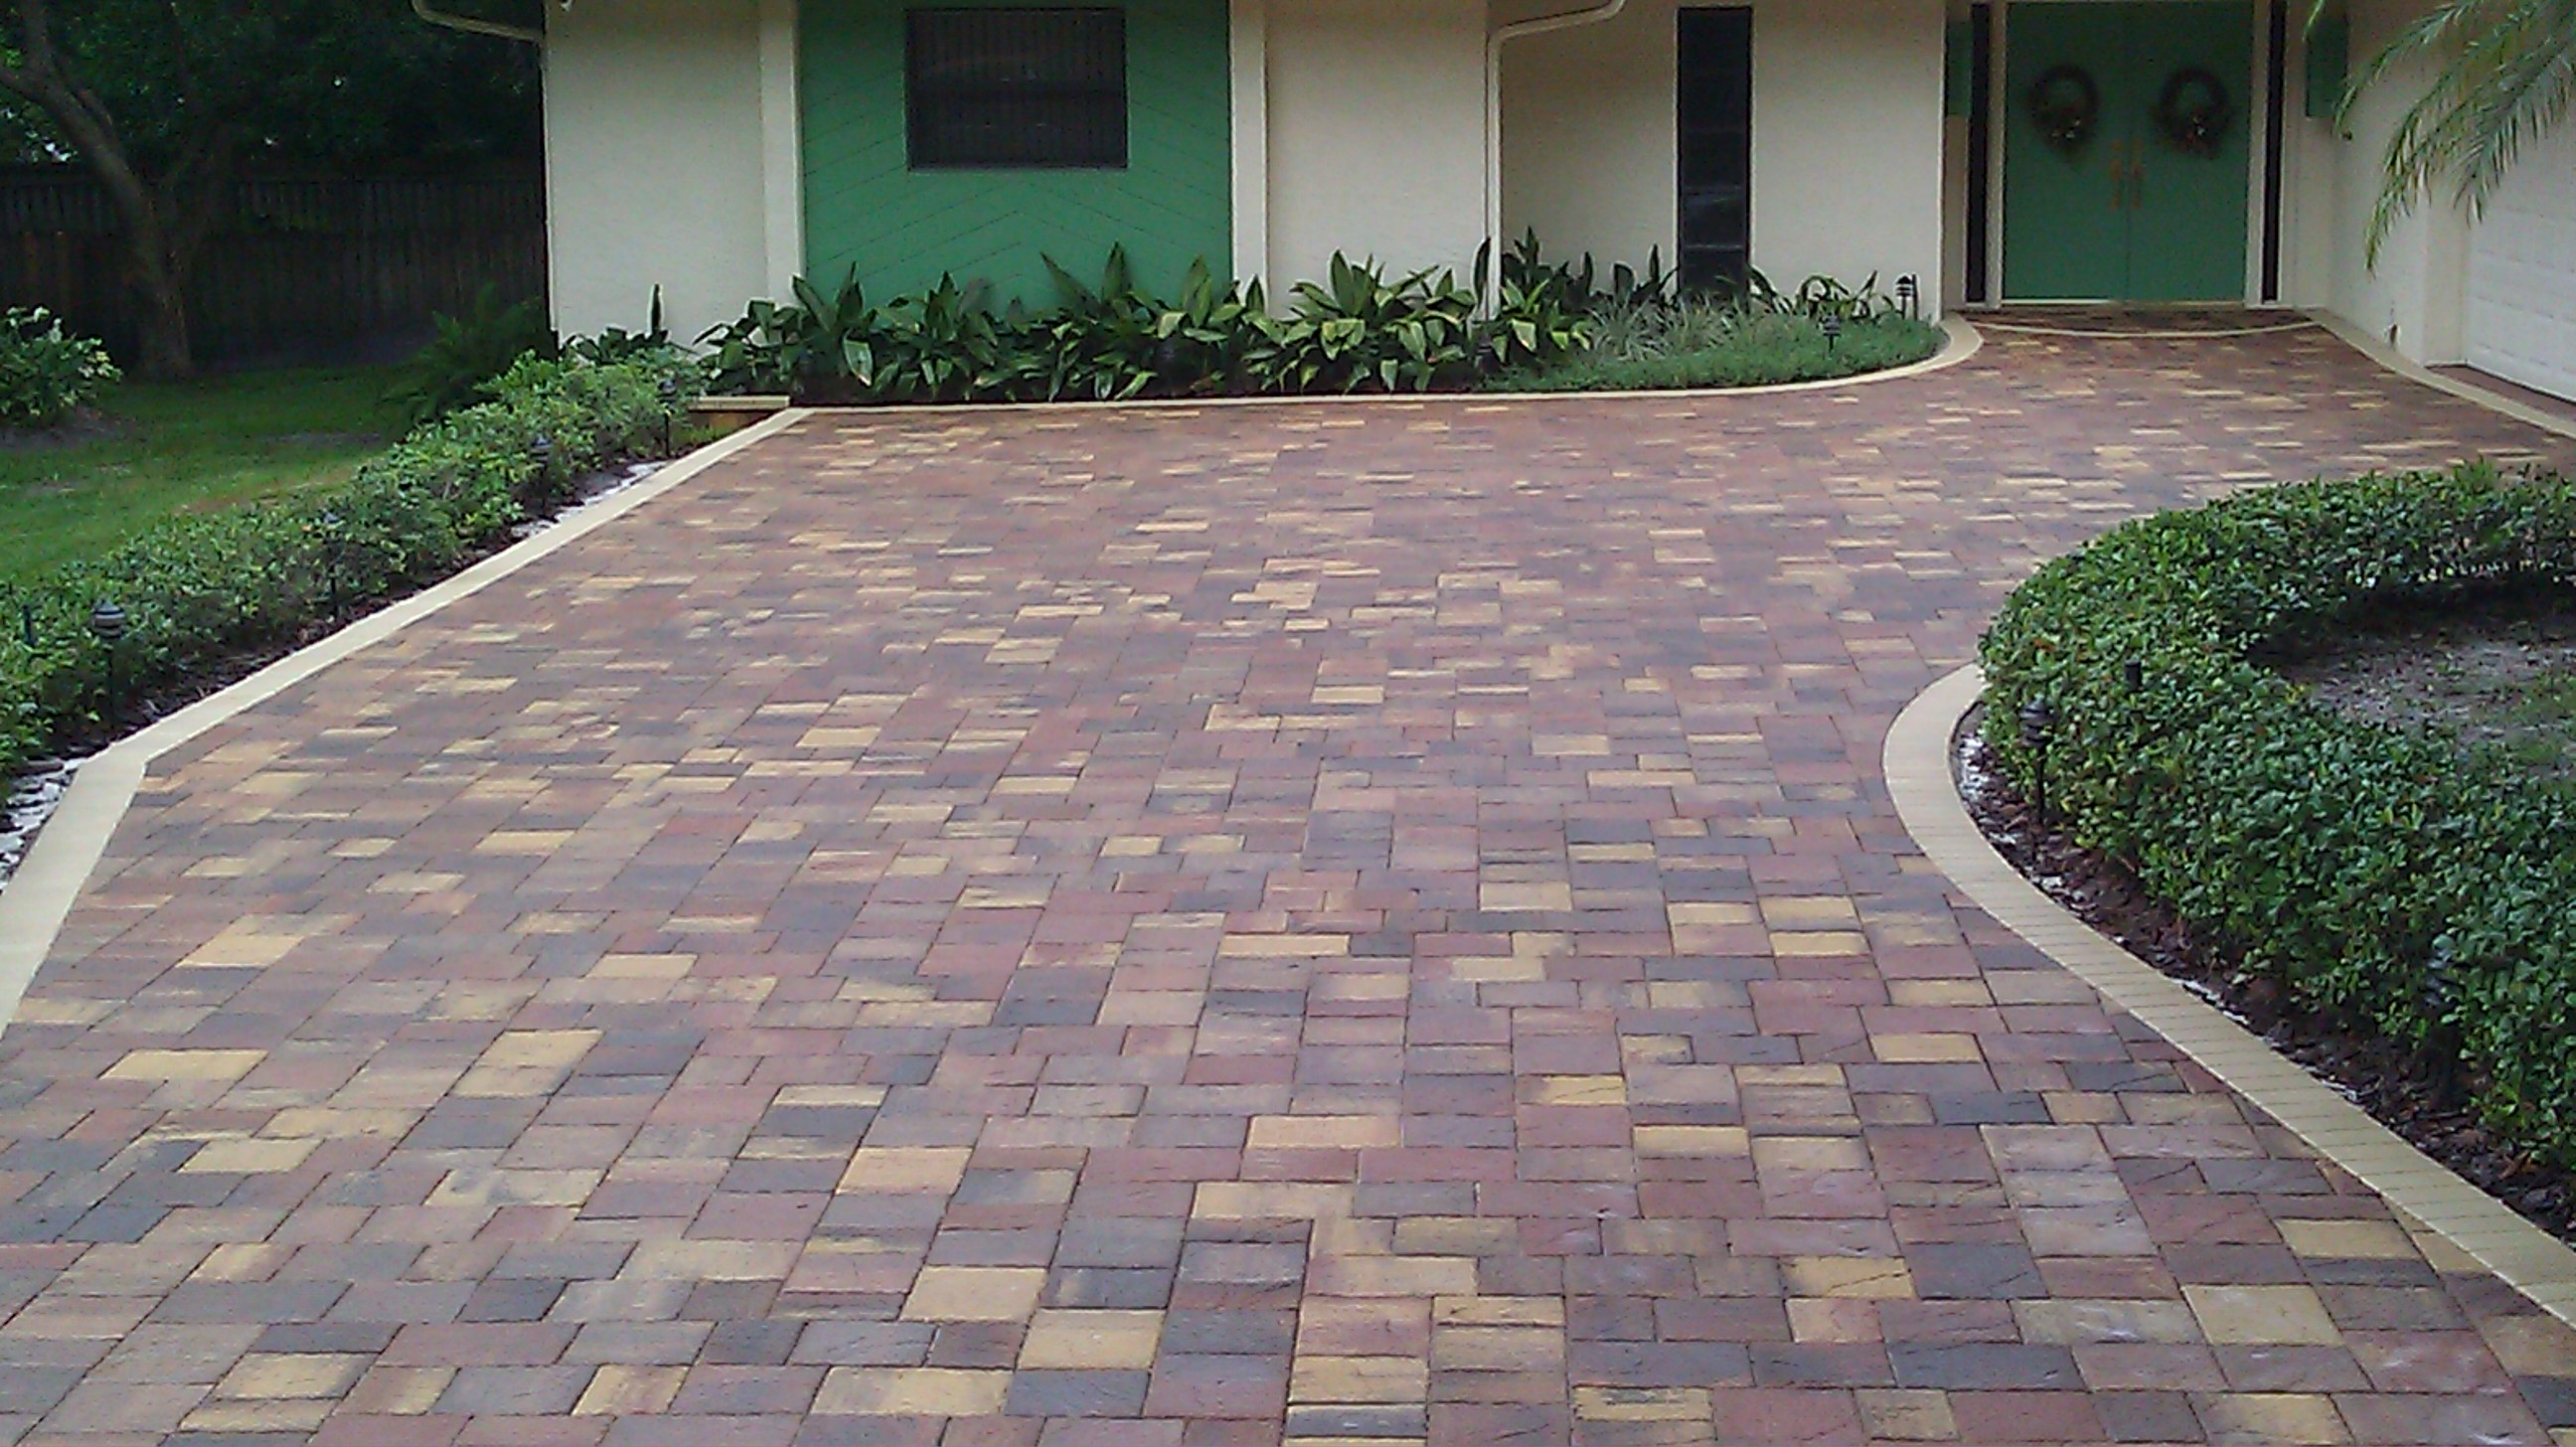 White Seal N Lock Lowes Aggregate Driveway Sealer Lowes Driveway Sealer Squeegee Clearwater Paver Driveway Paver Driveway After Sealing Withseal N Lock Clearwater Paver Sealing Paver Sealing houzz-02 Lowes Driveway Sealer